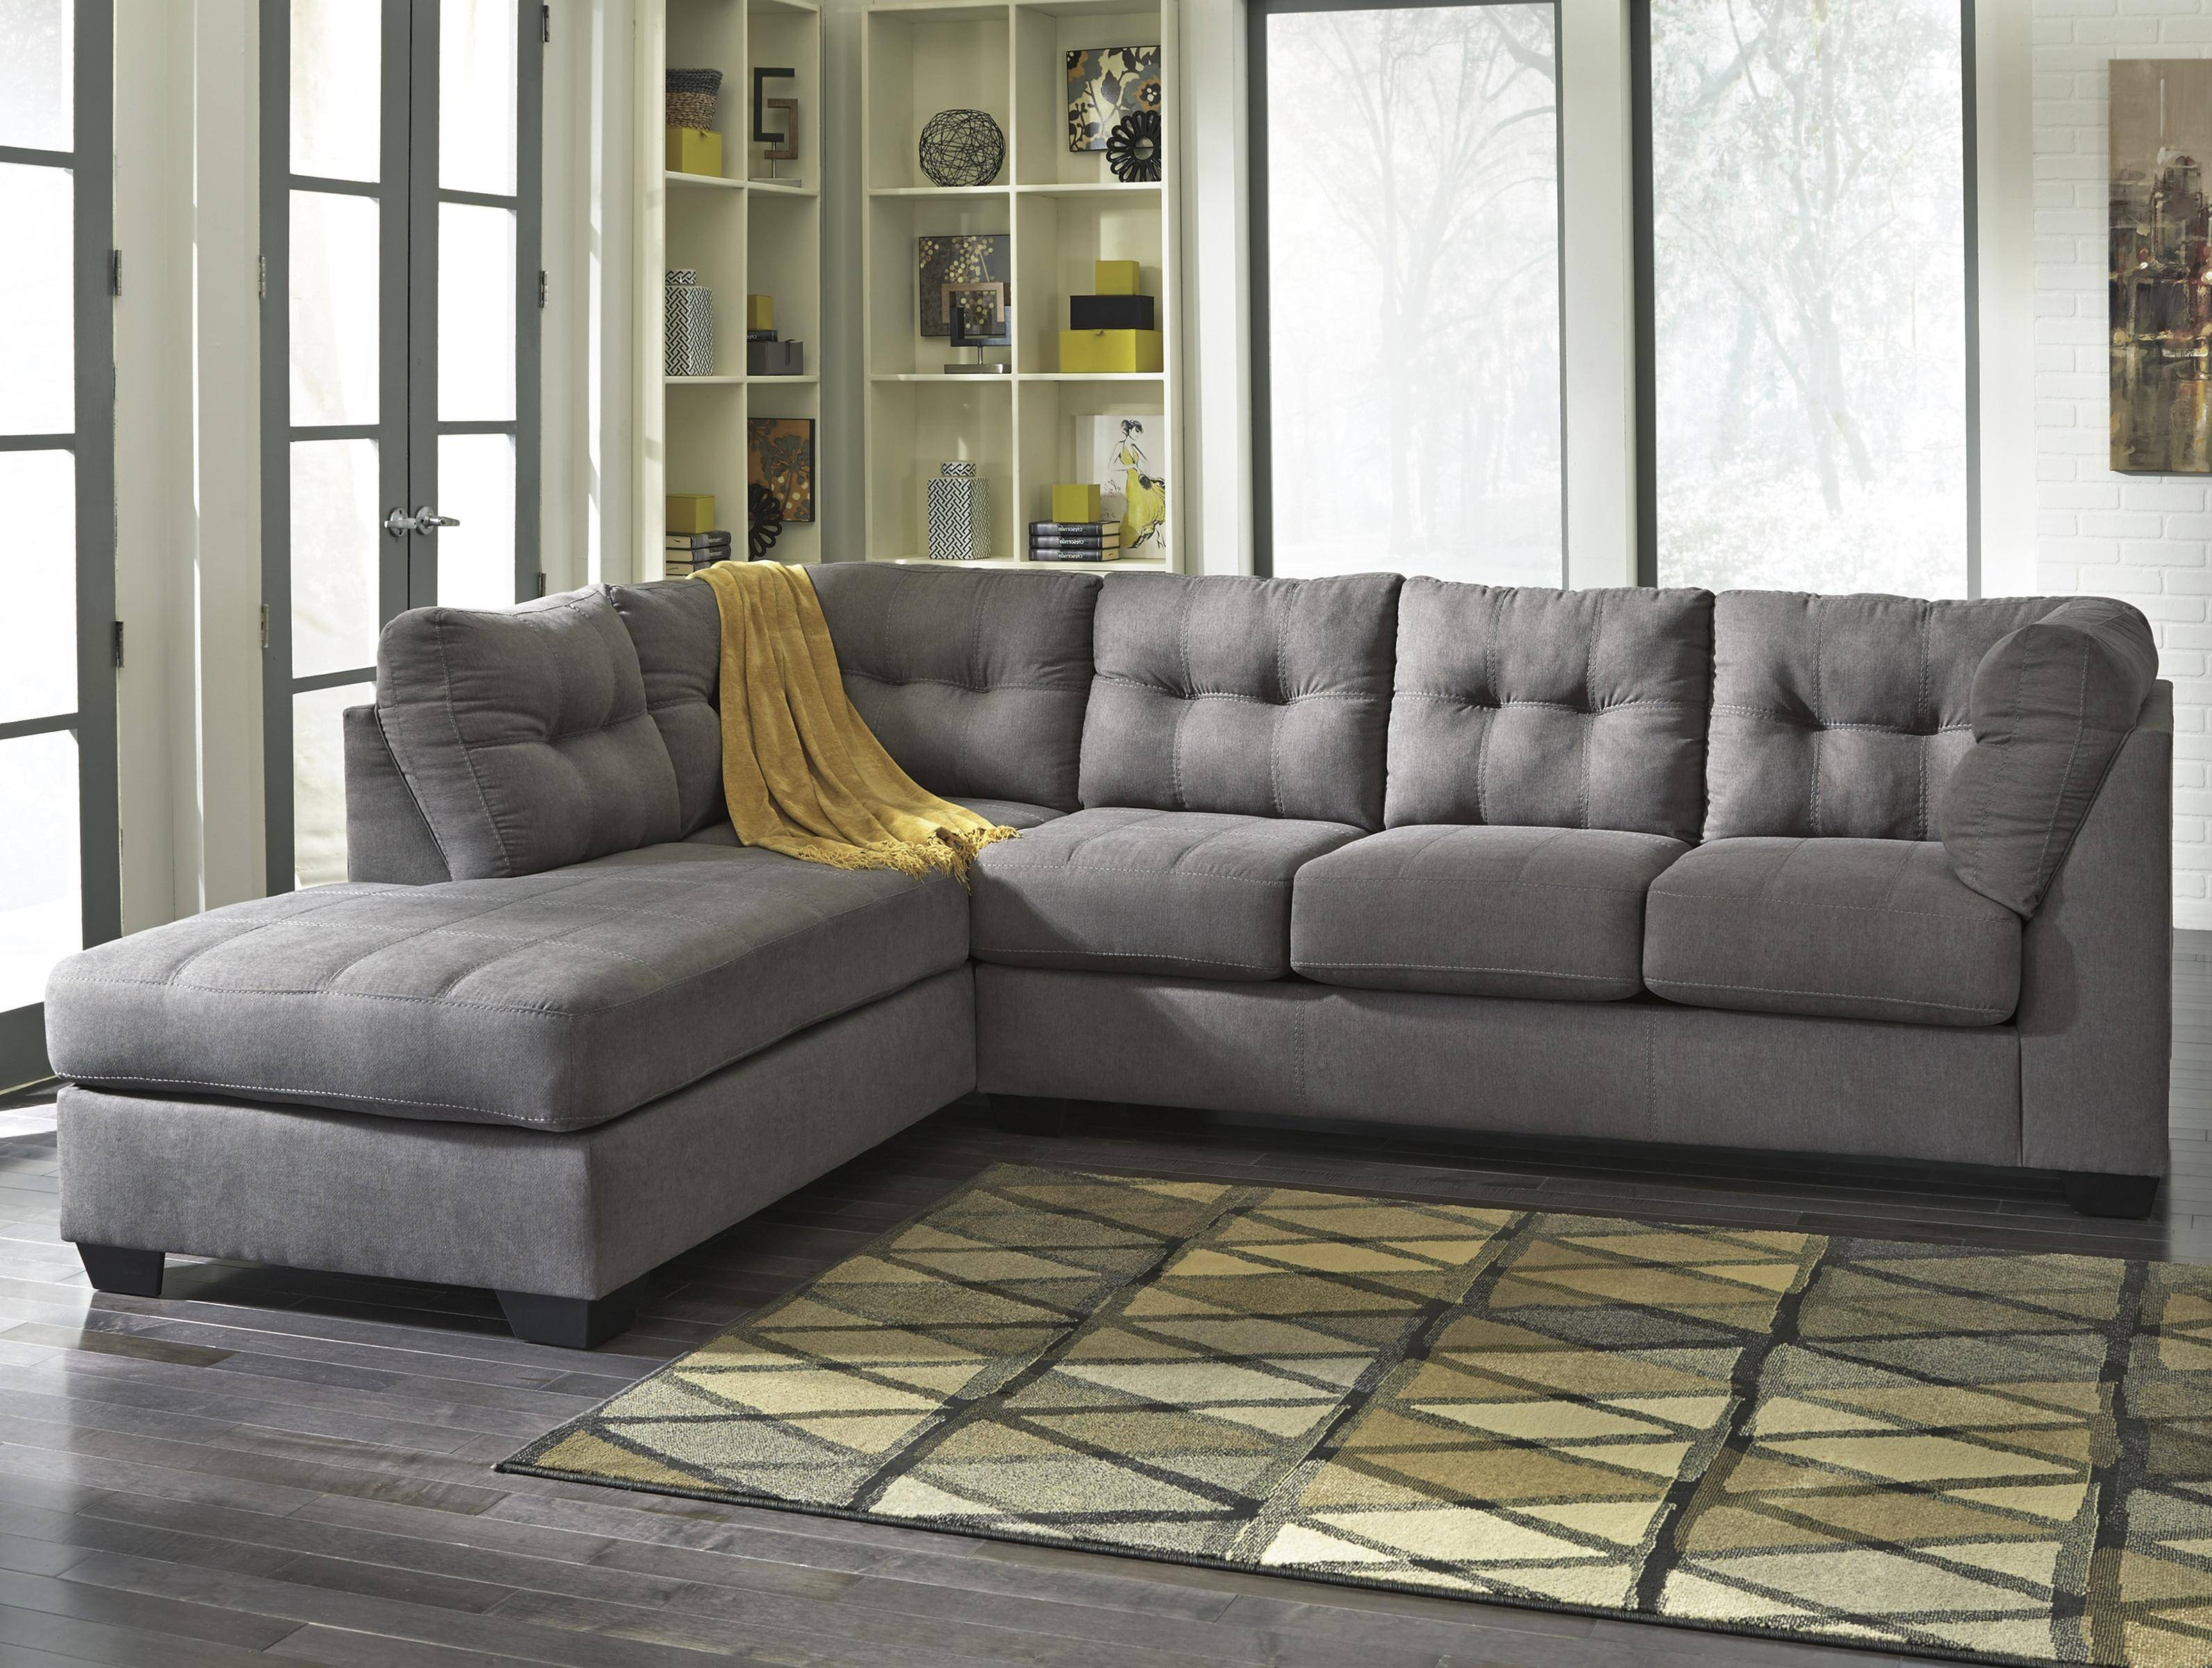 Benchcraft Maier – Charcoal 2 Piece Sectional W/ Sleeper Sofa Within Sectional Sofas With Sleeper And Chaise (View 4 of 30)